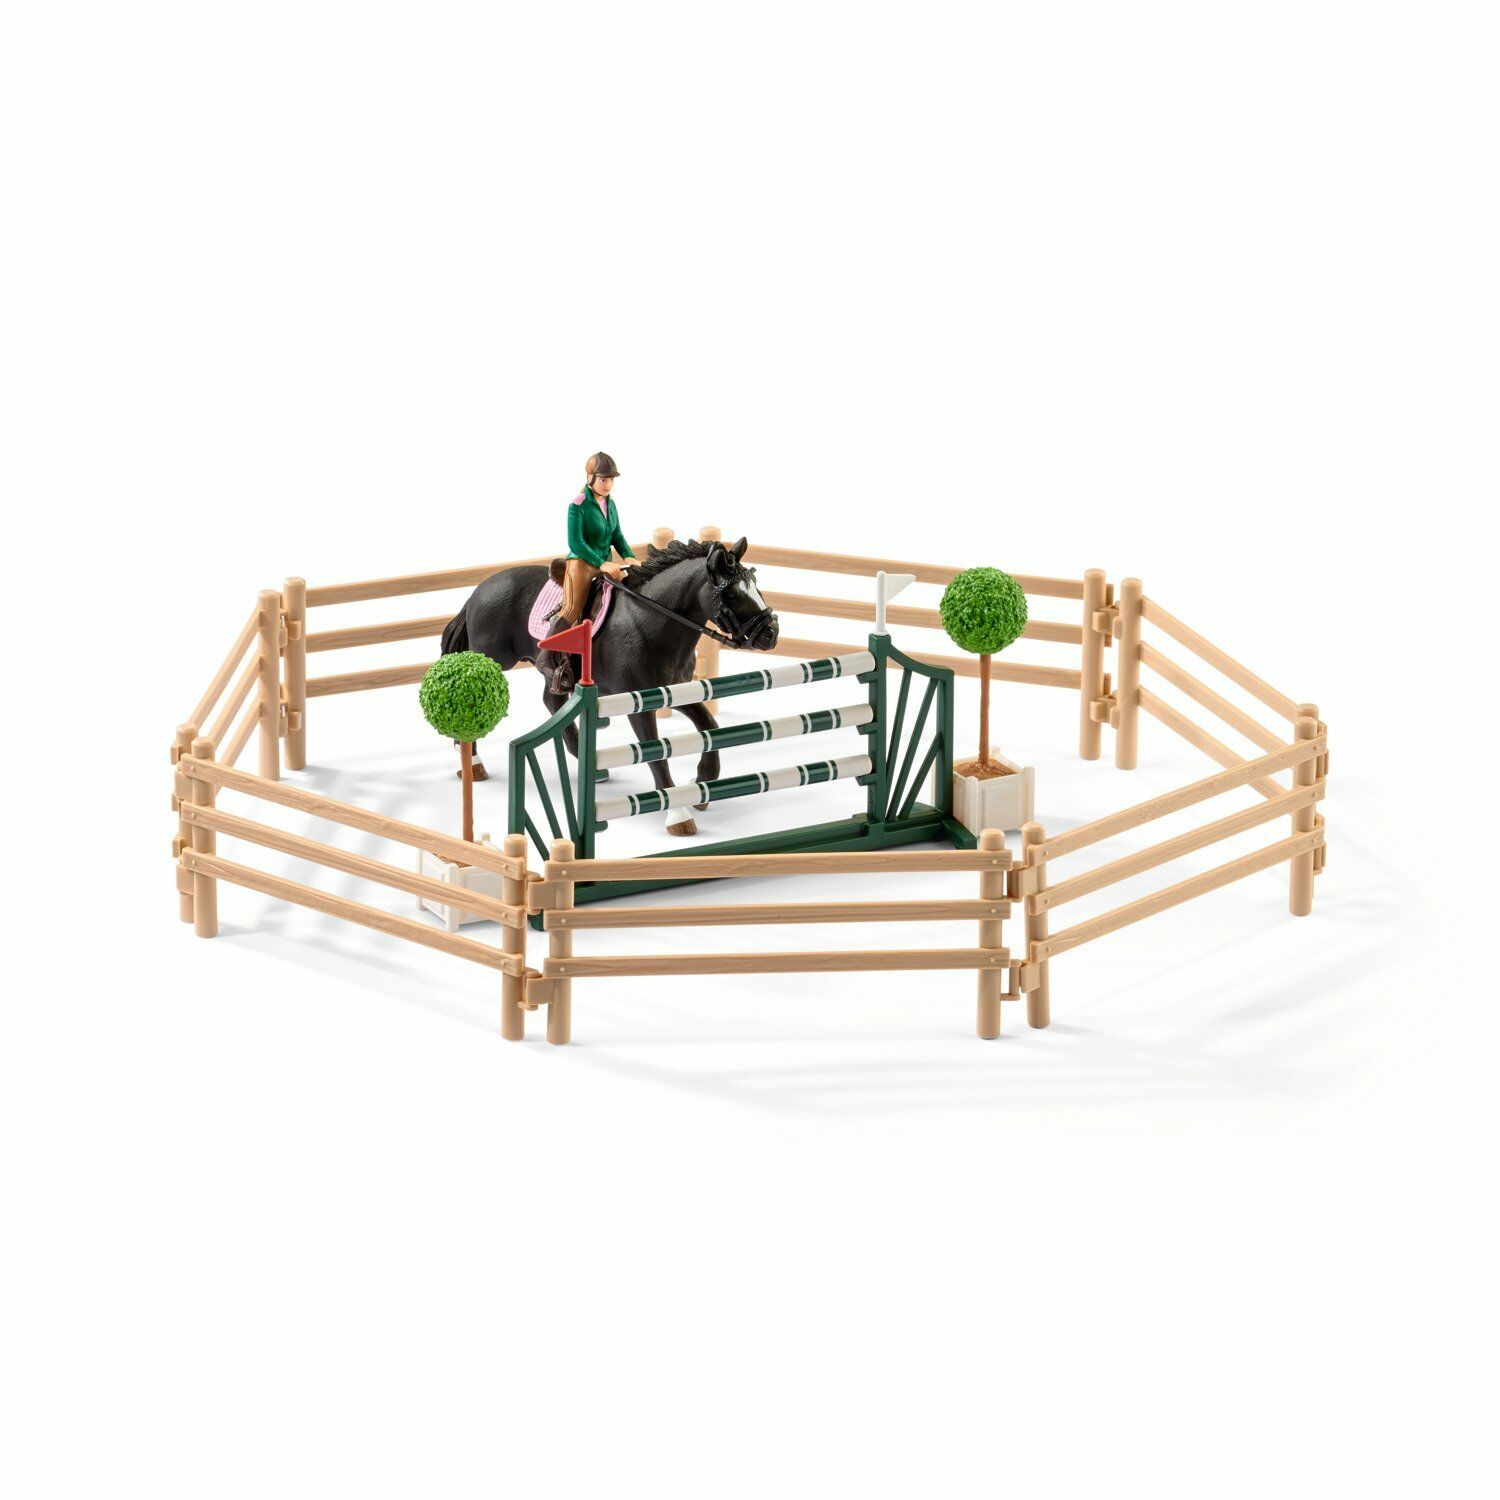 Schleich 42389 Club Riding School with Riders Riders Riders and Horses Toy 089e73